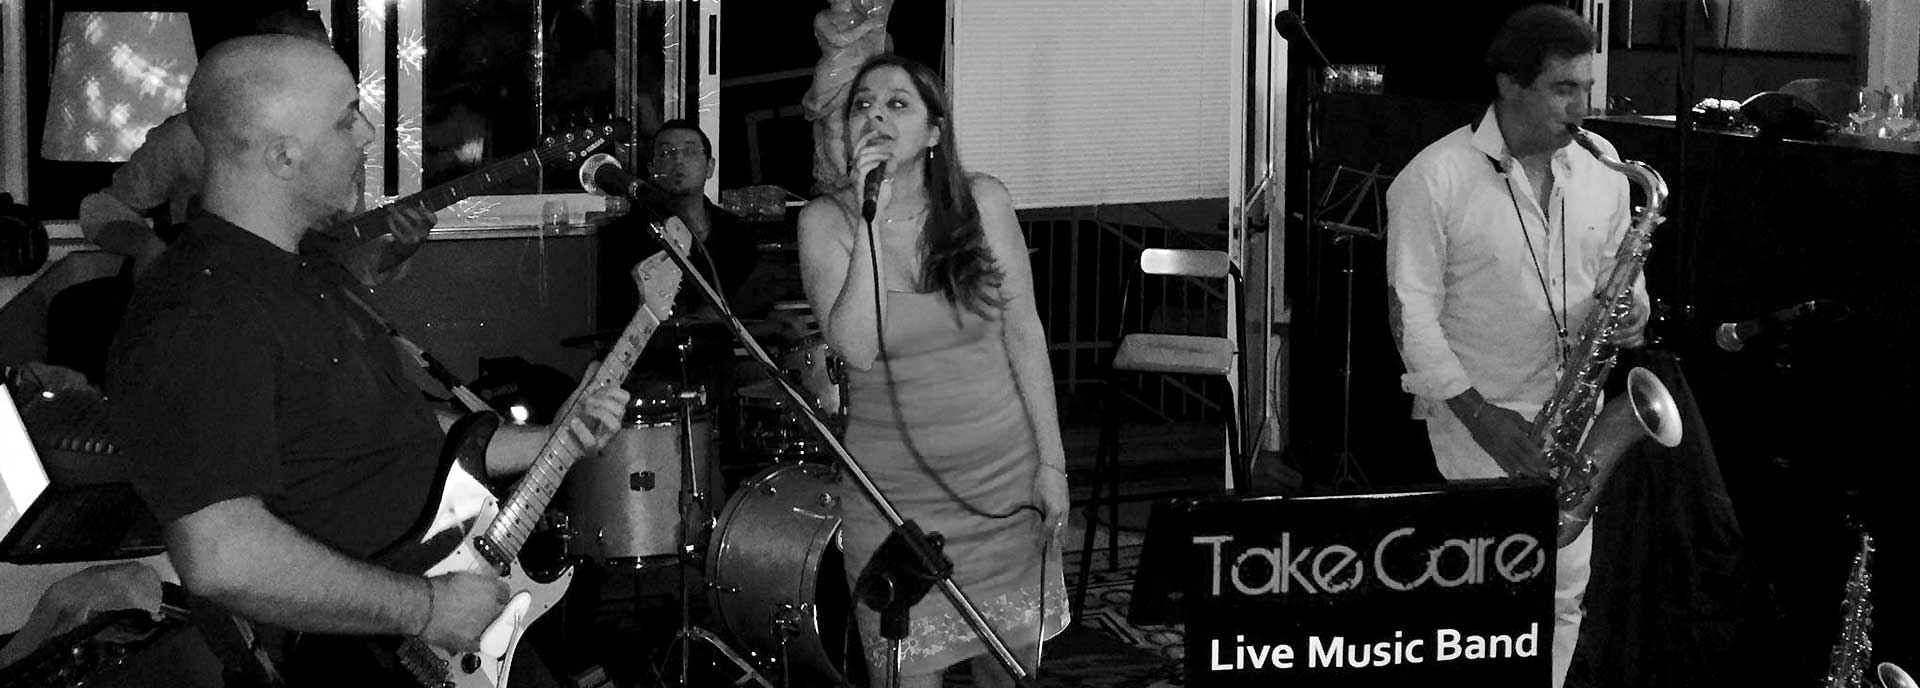 TakeCare Live Music Band Torino